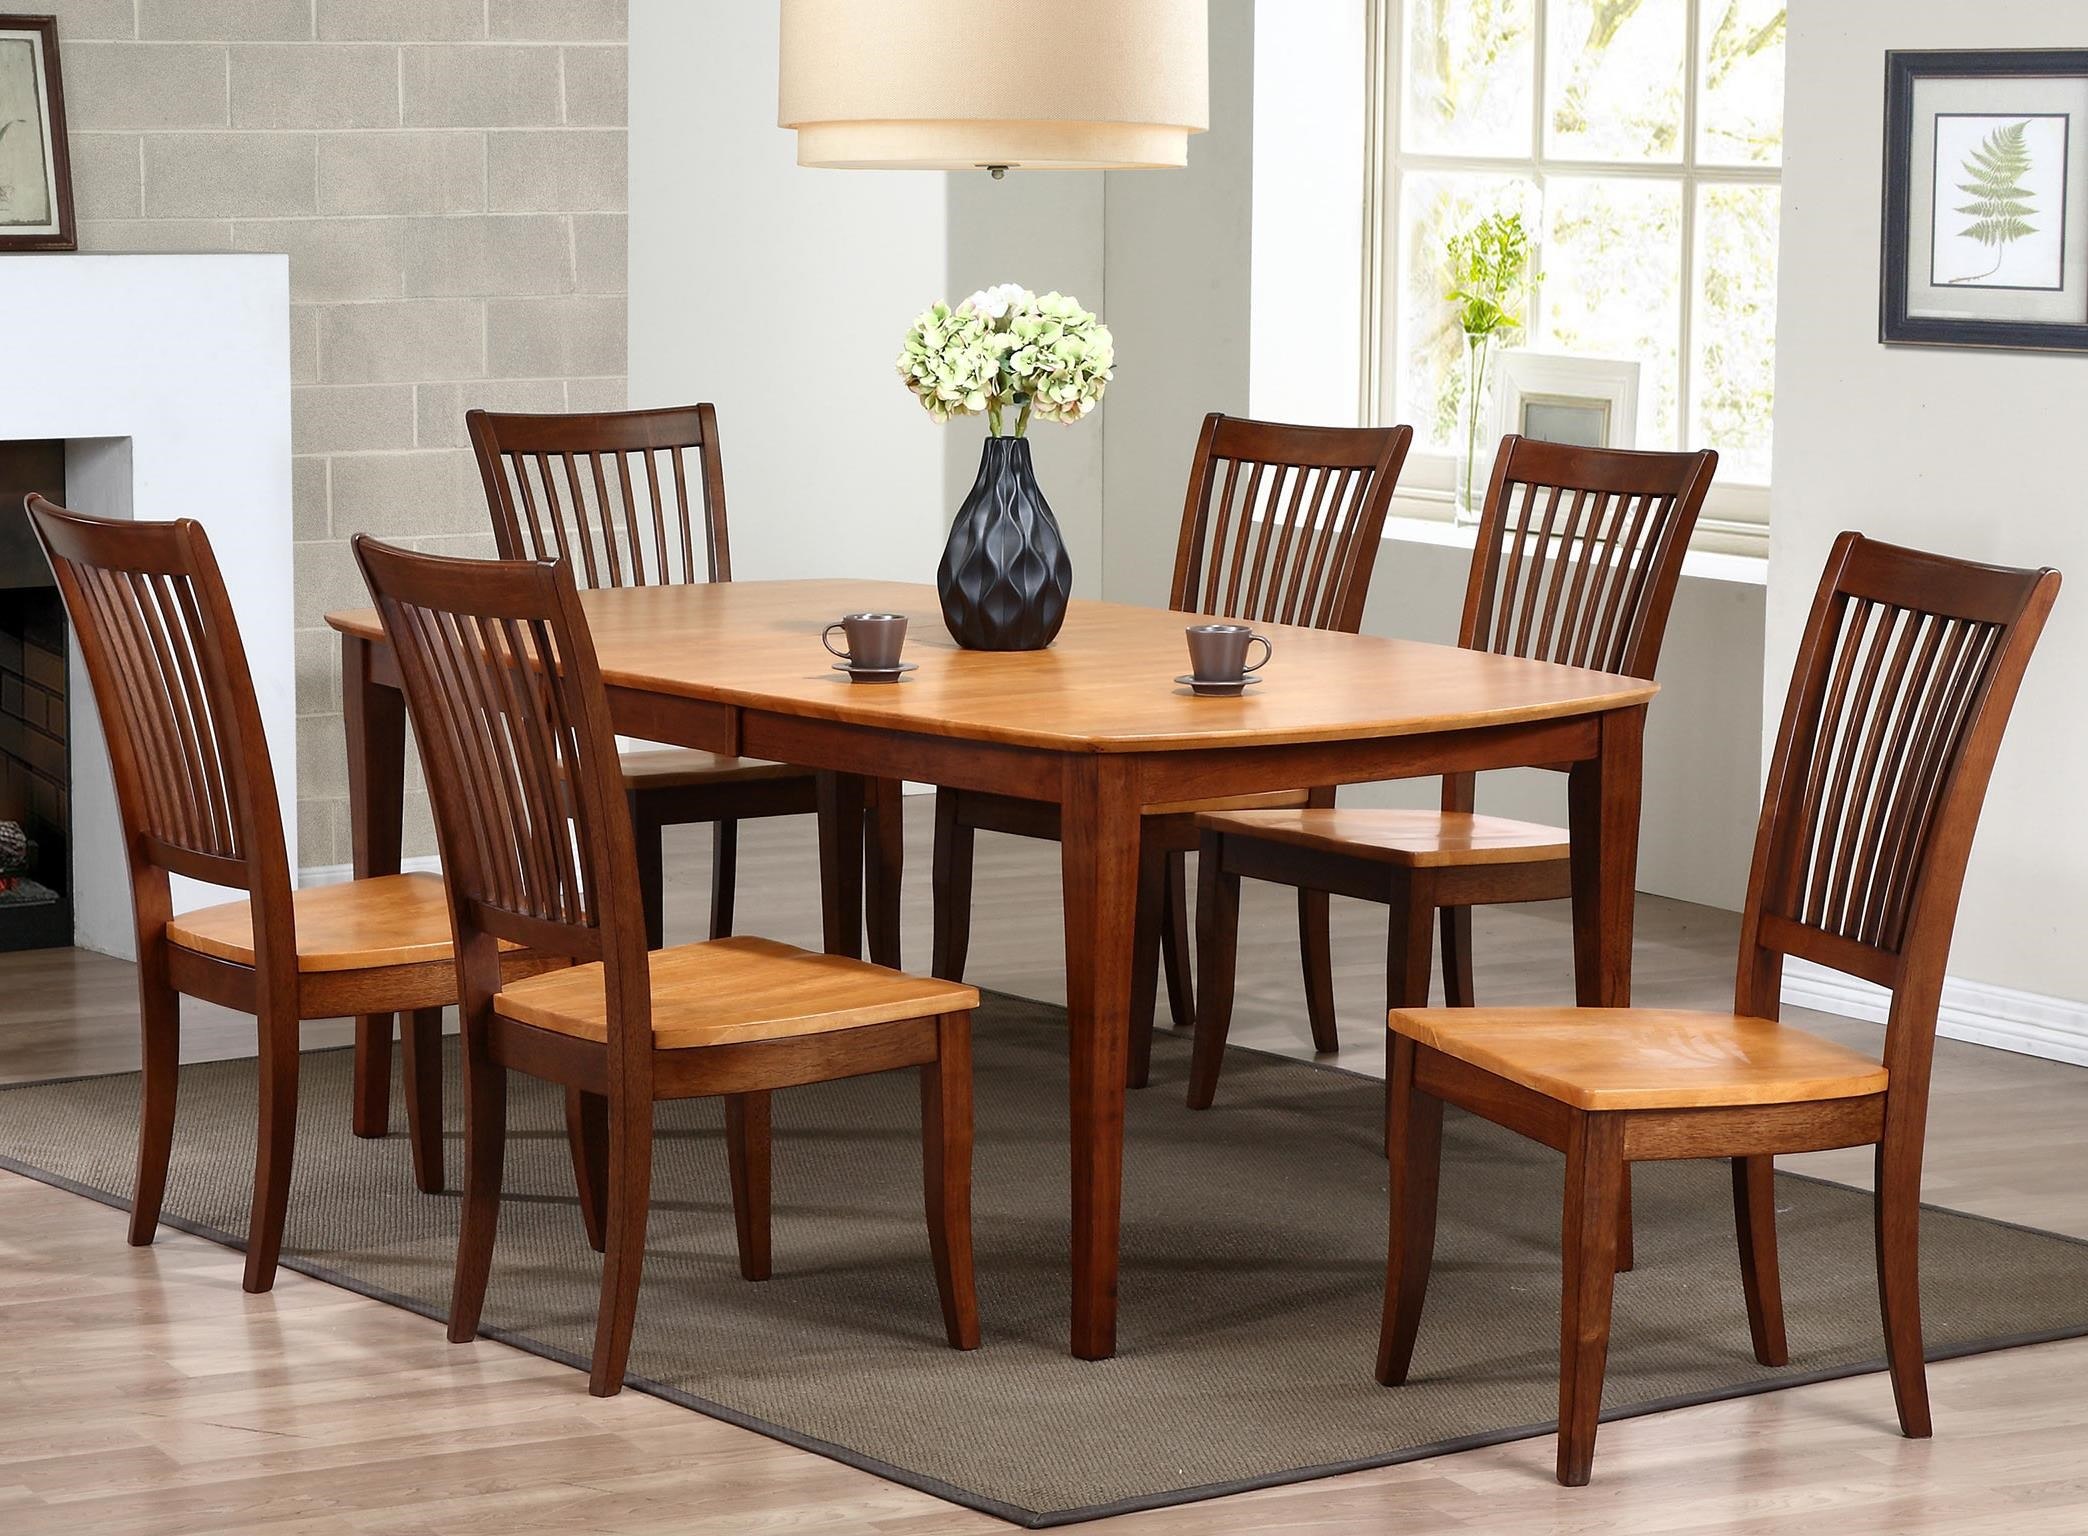 slat back chairs. Winners Only Santa Barbara7 Piece Dining Set With Slat Back Chairs